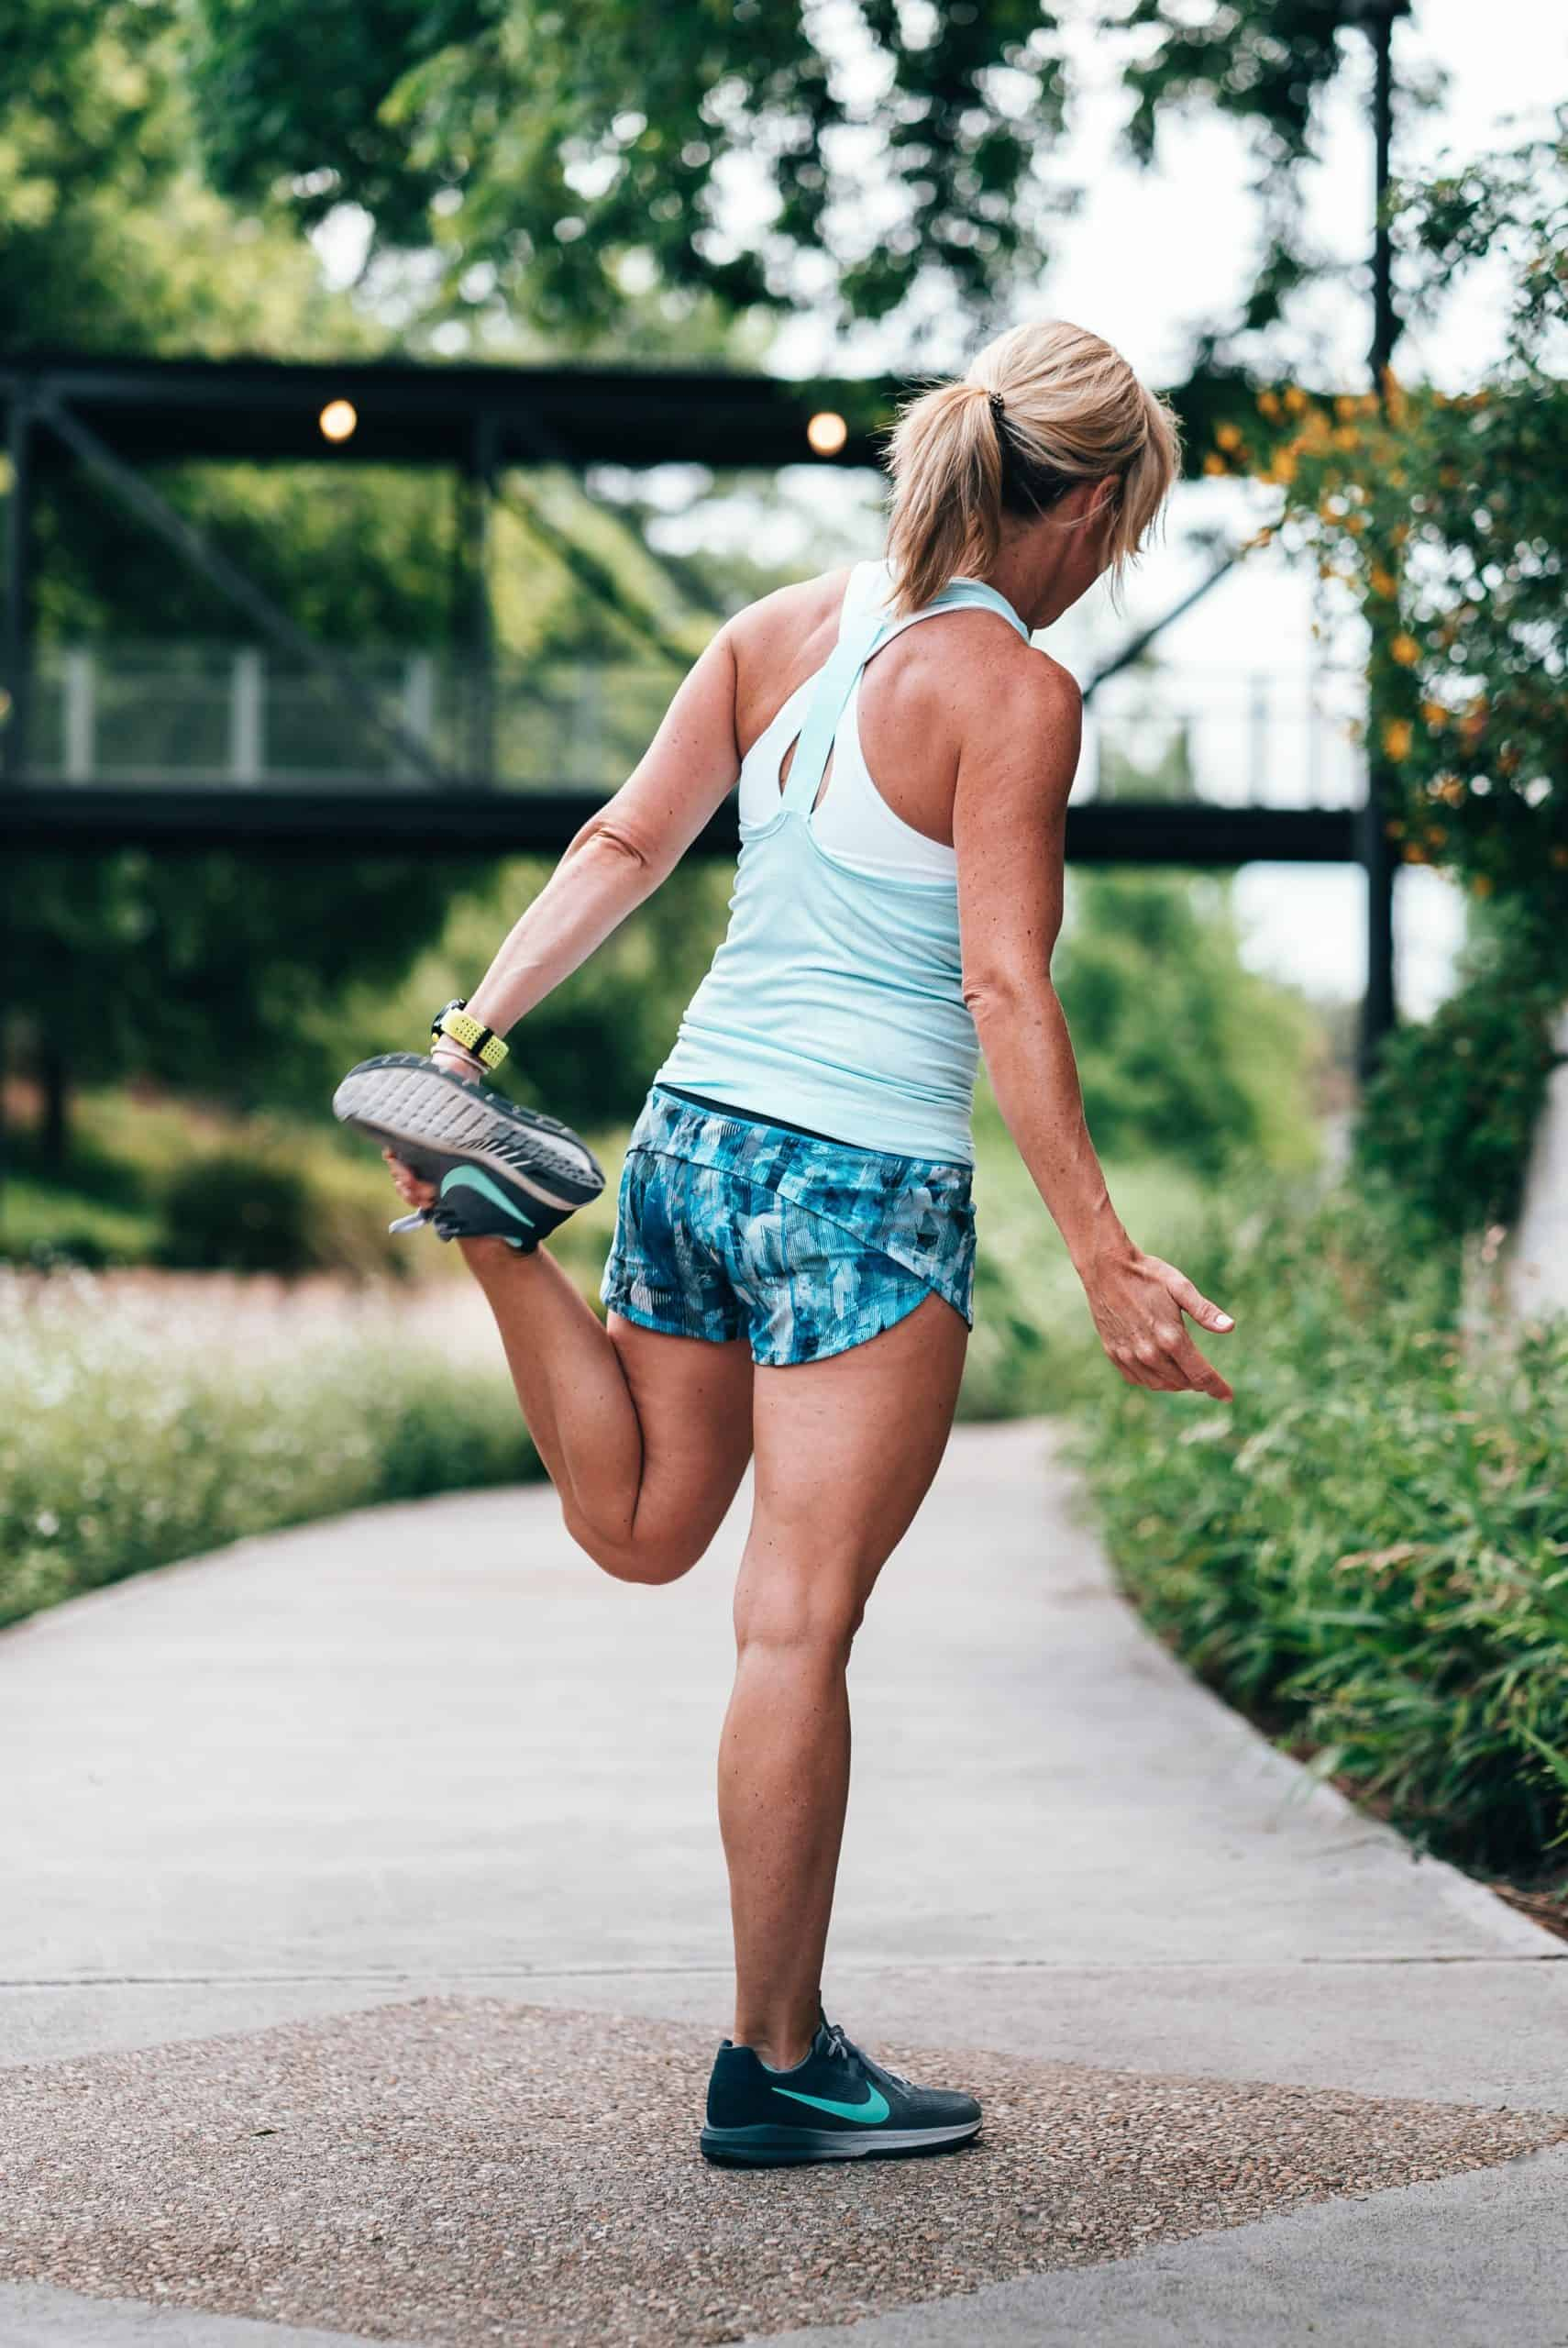 Tips To Help Run Faster With Your New Running Trainer